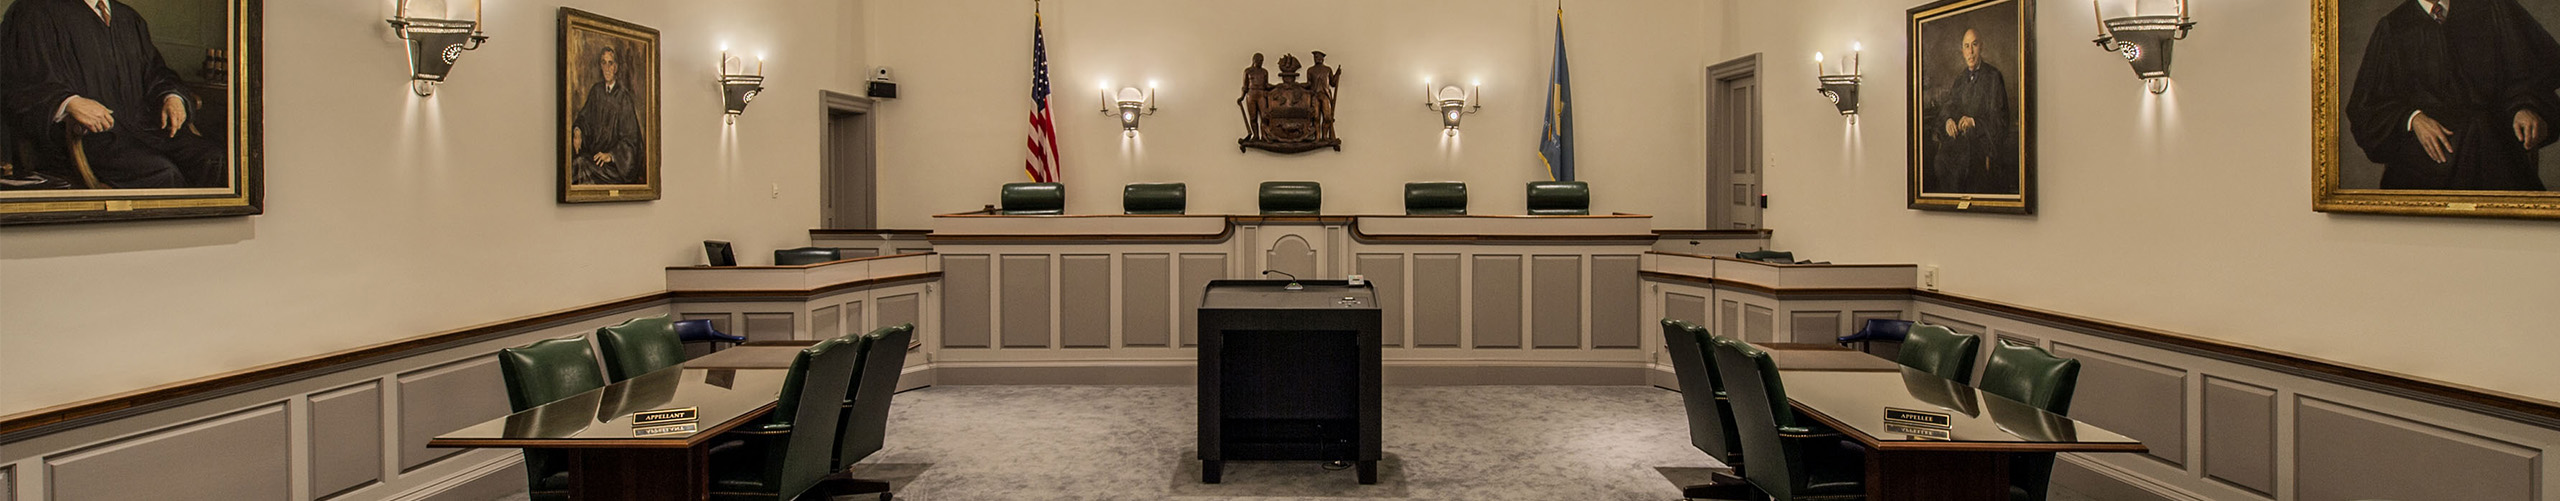 Operating Procedures for Delaware Courts Now Online